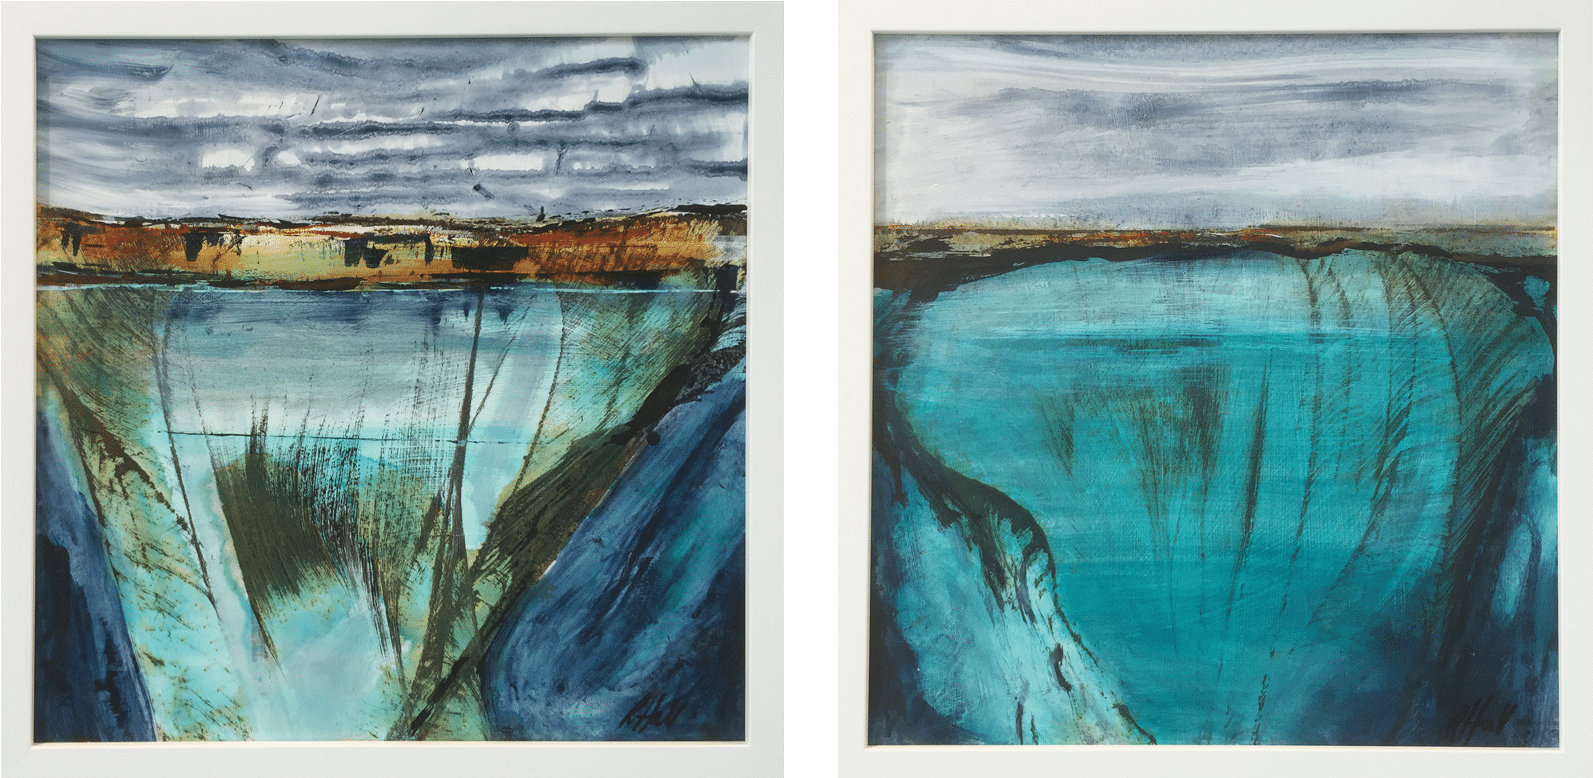 Pathways 4 and 5 diptych